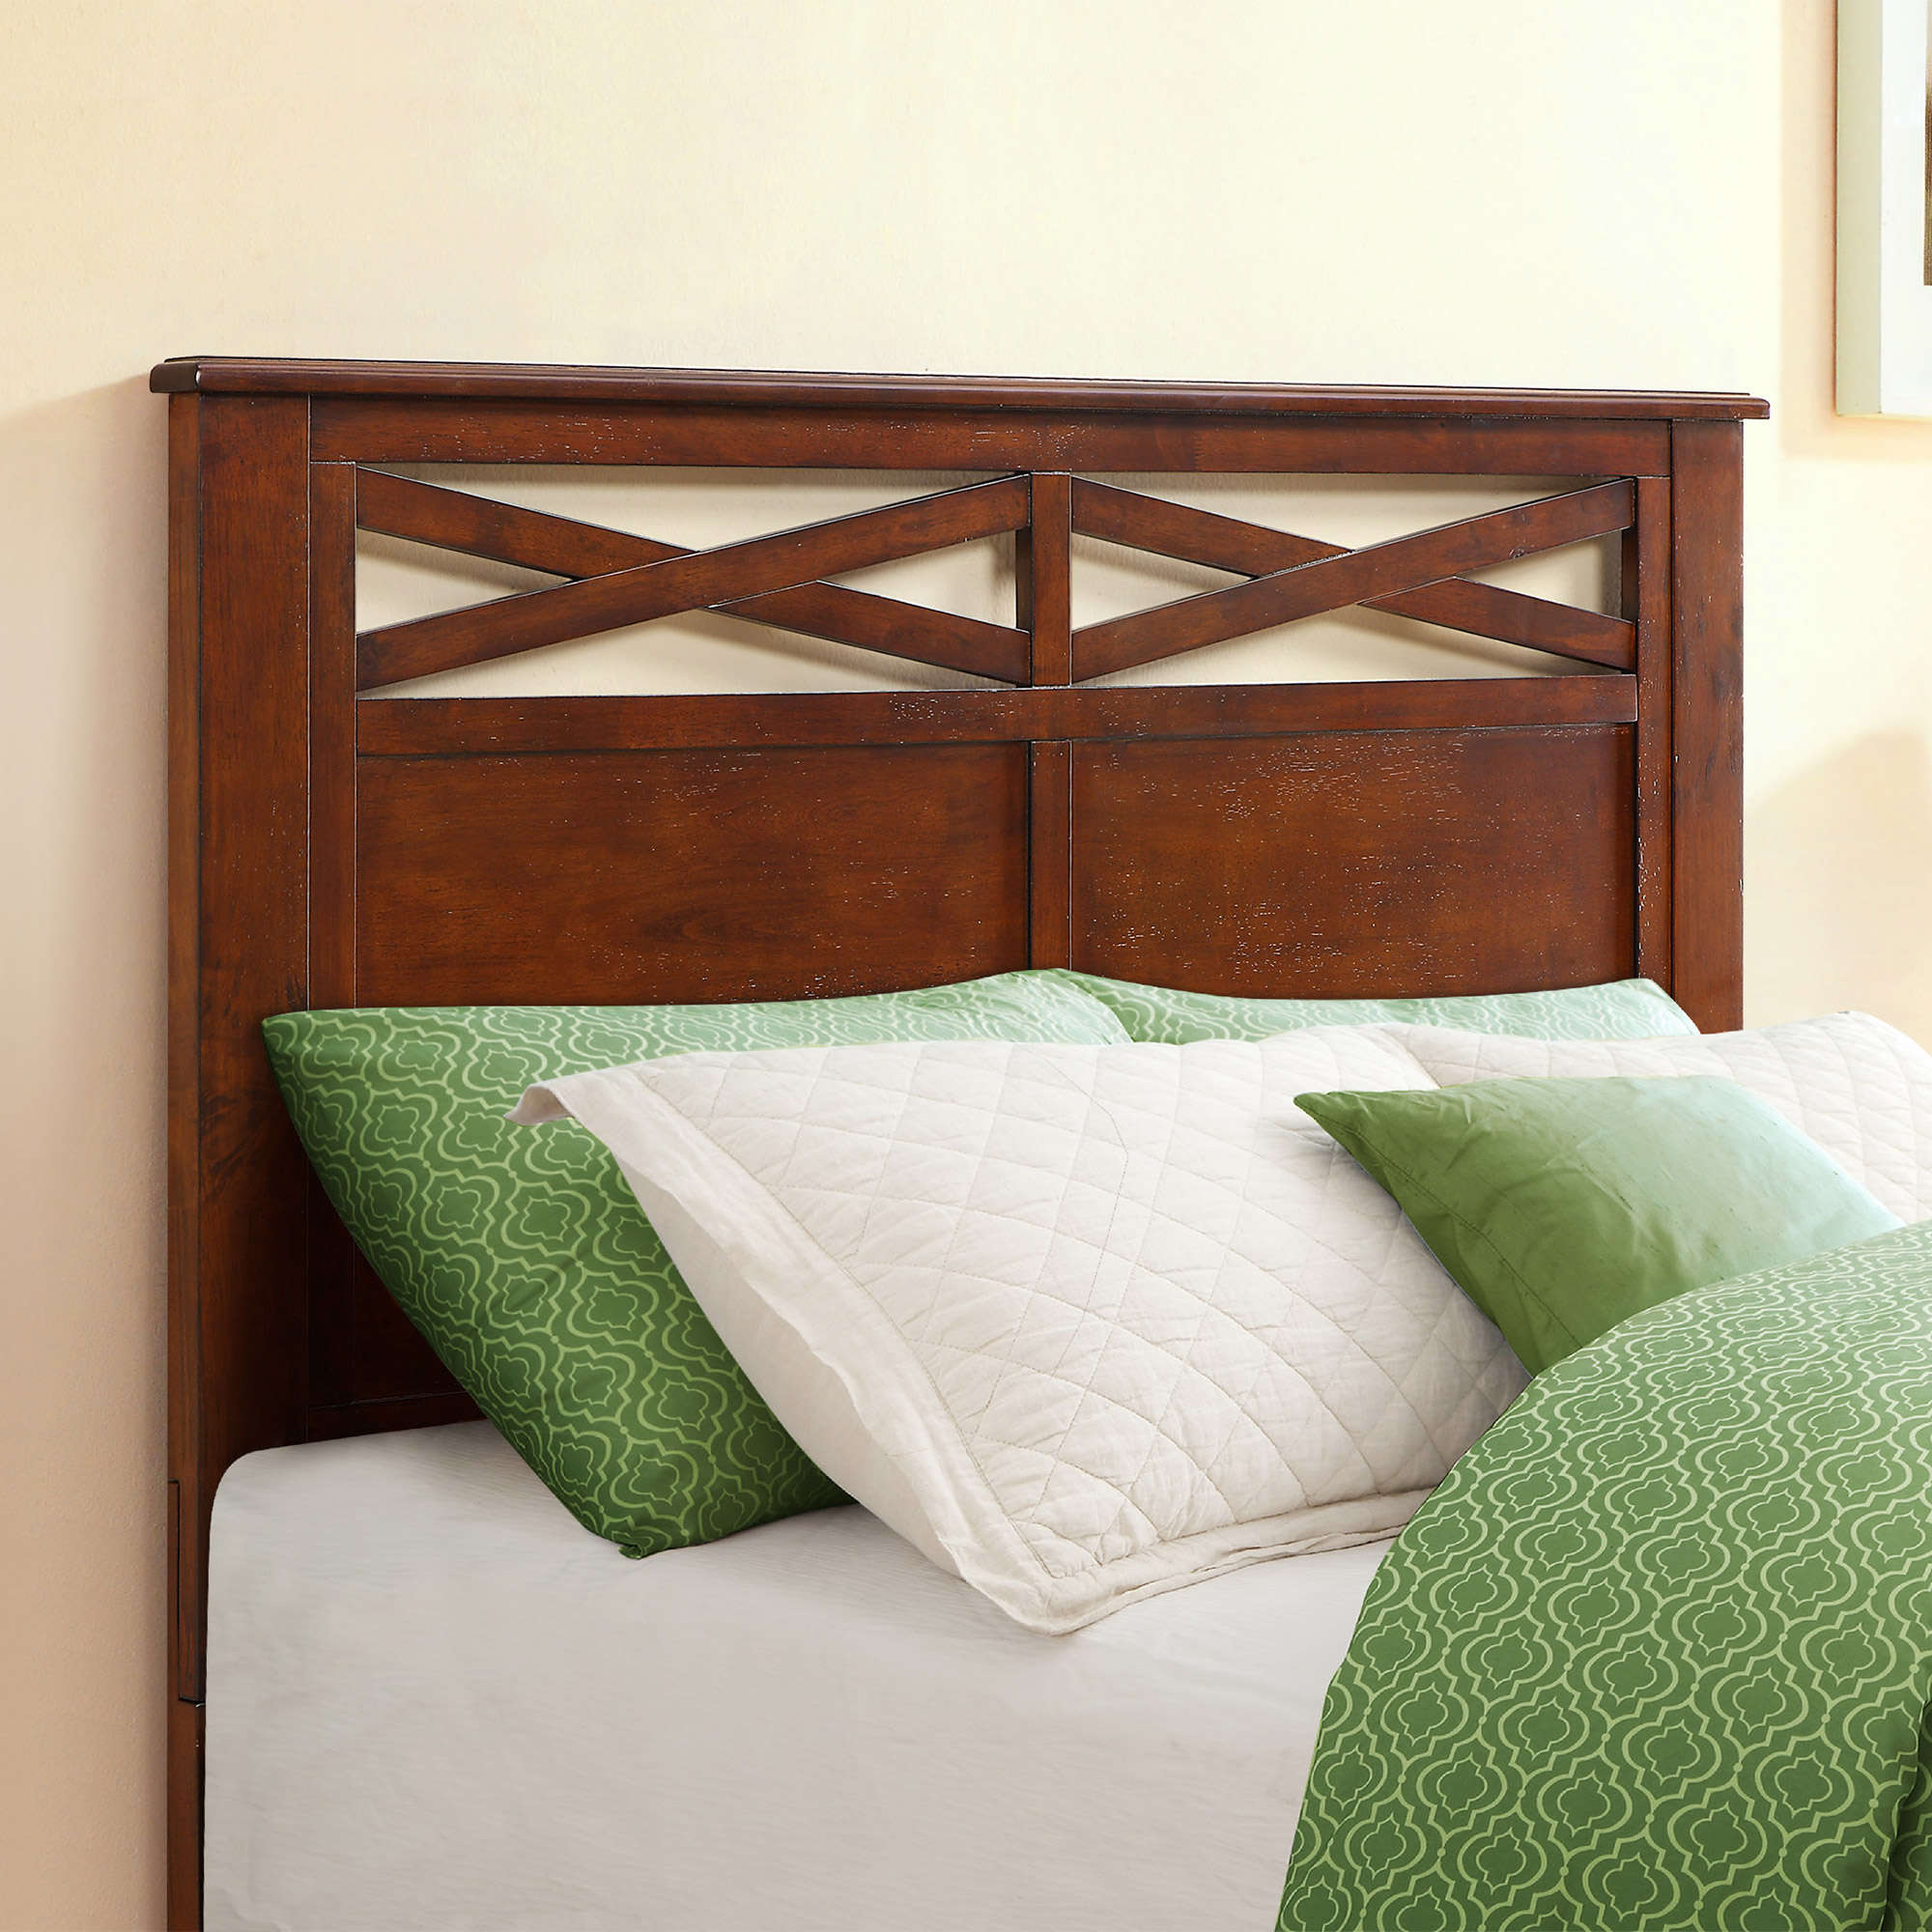 Better Homes & Gardens Maddox Crossing Queen/Full Headboard, Warm Brown Finish